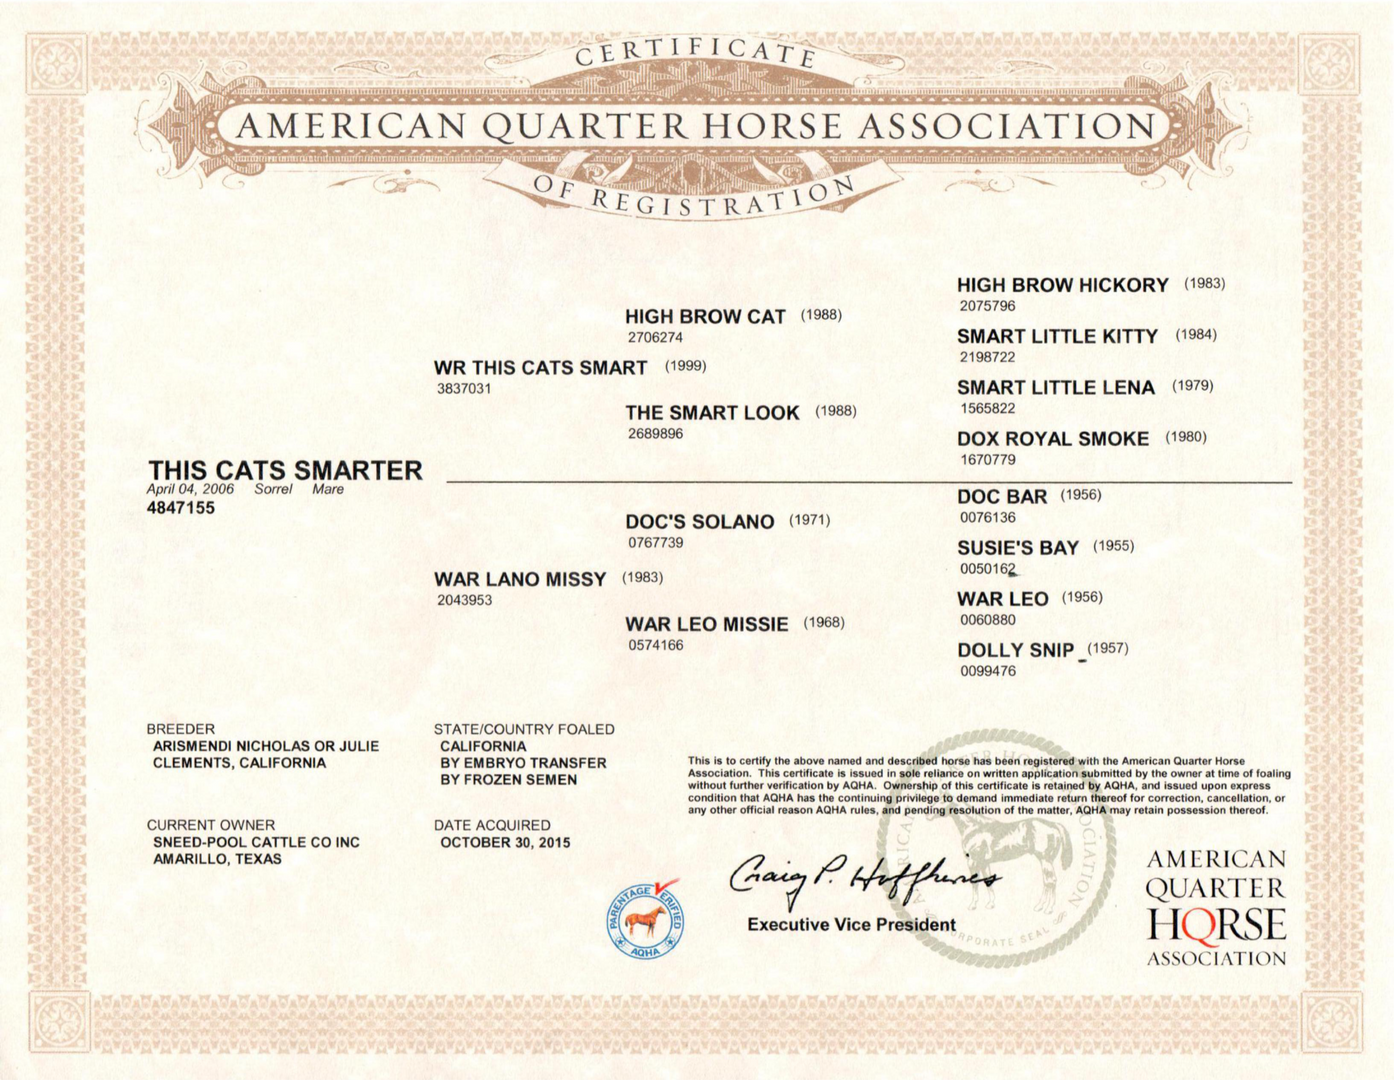 This Cats Smarter AQHA Certificate